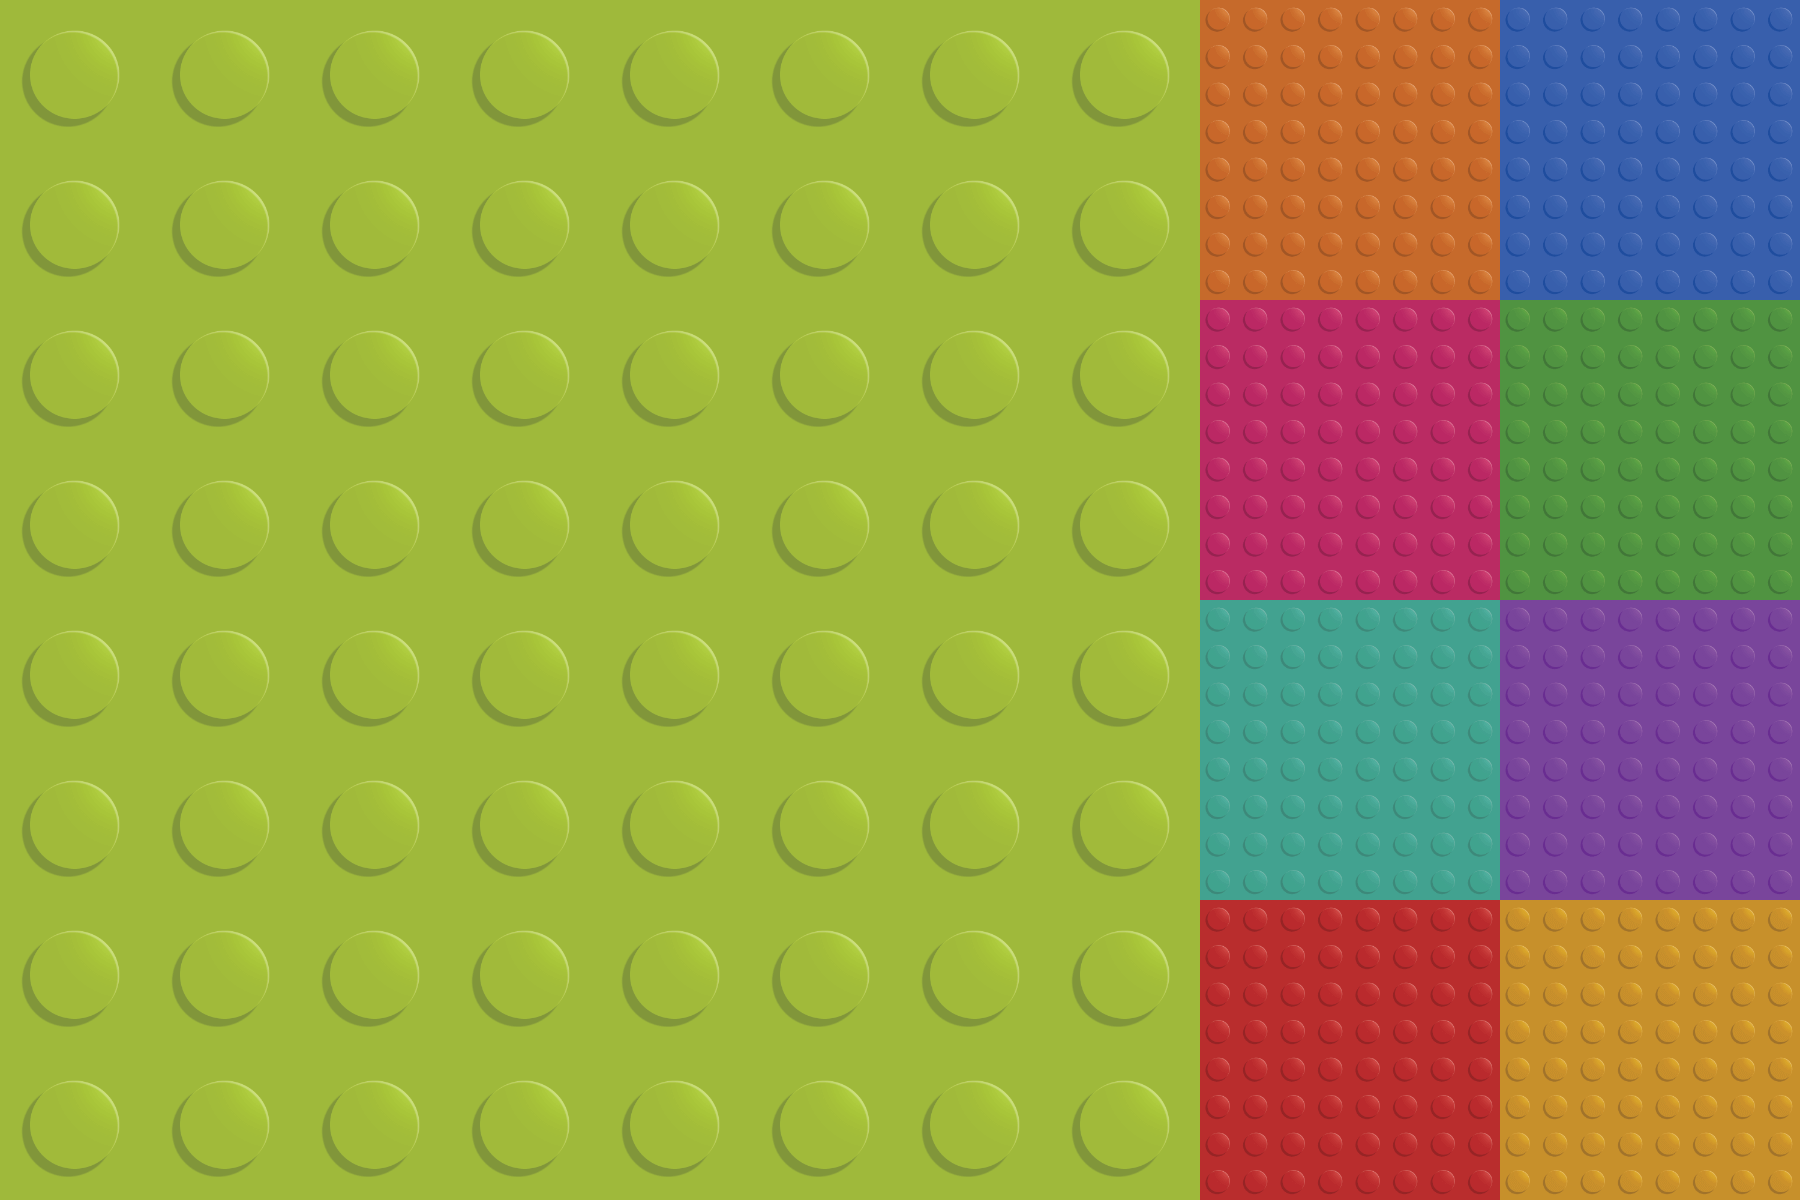 printable lego background pattern